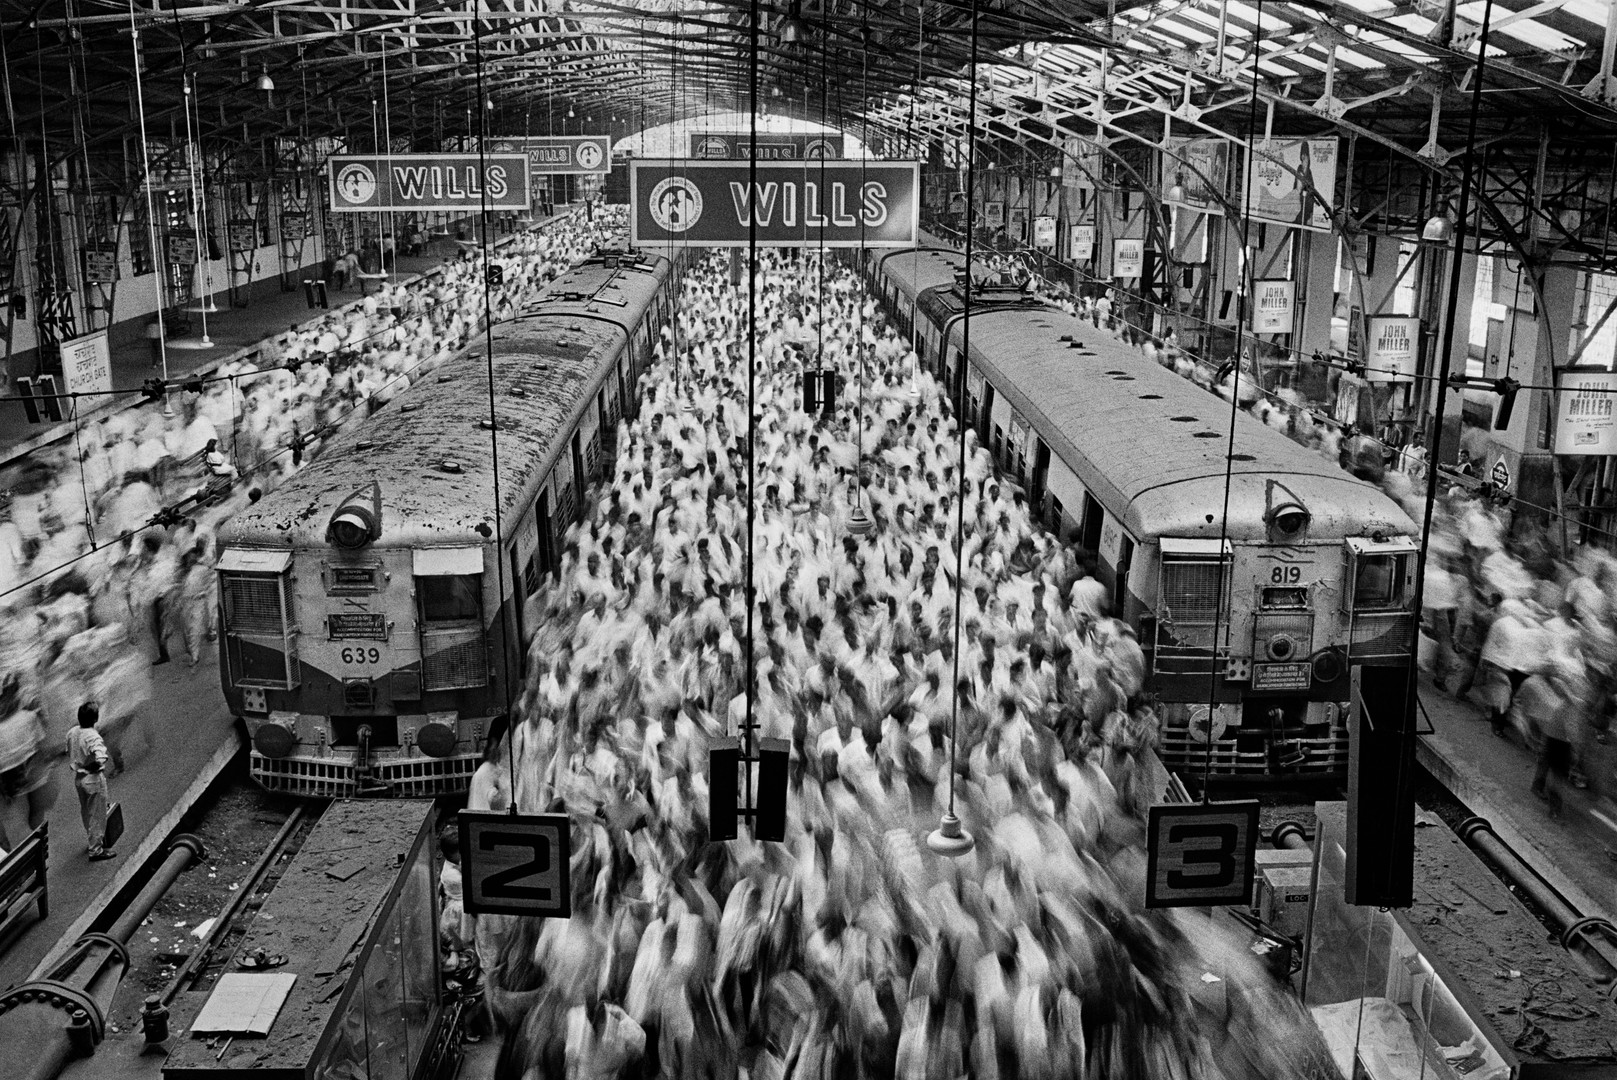 Sebastião Salgado, Untitled, 1995, a photograph taken at a terminus station in Bombay, India.